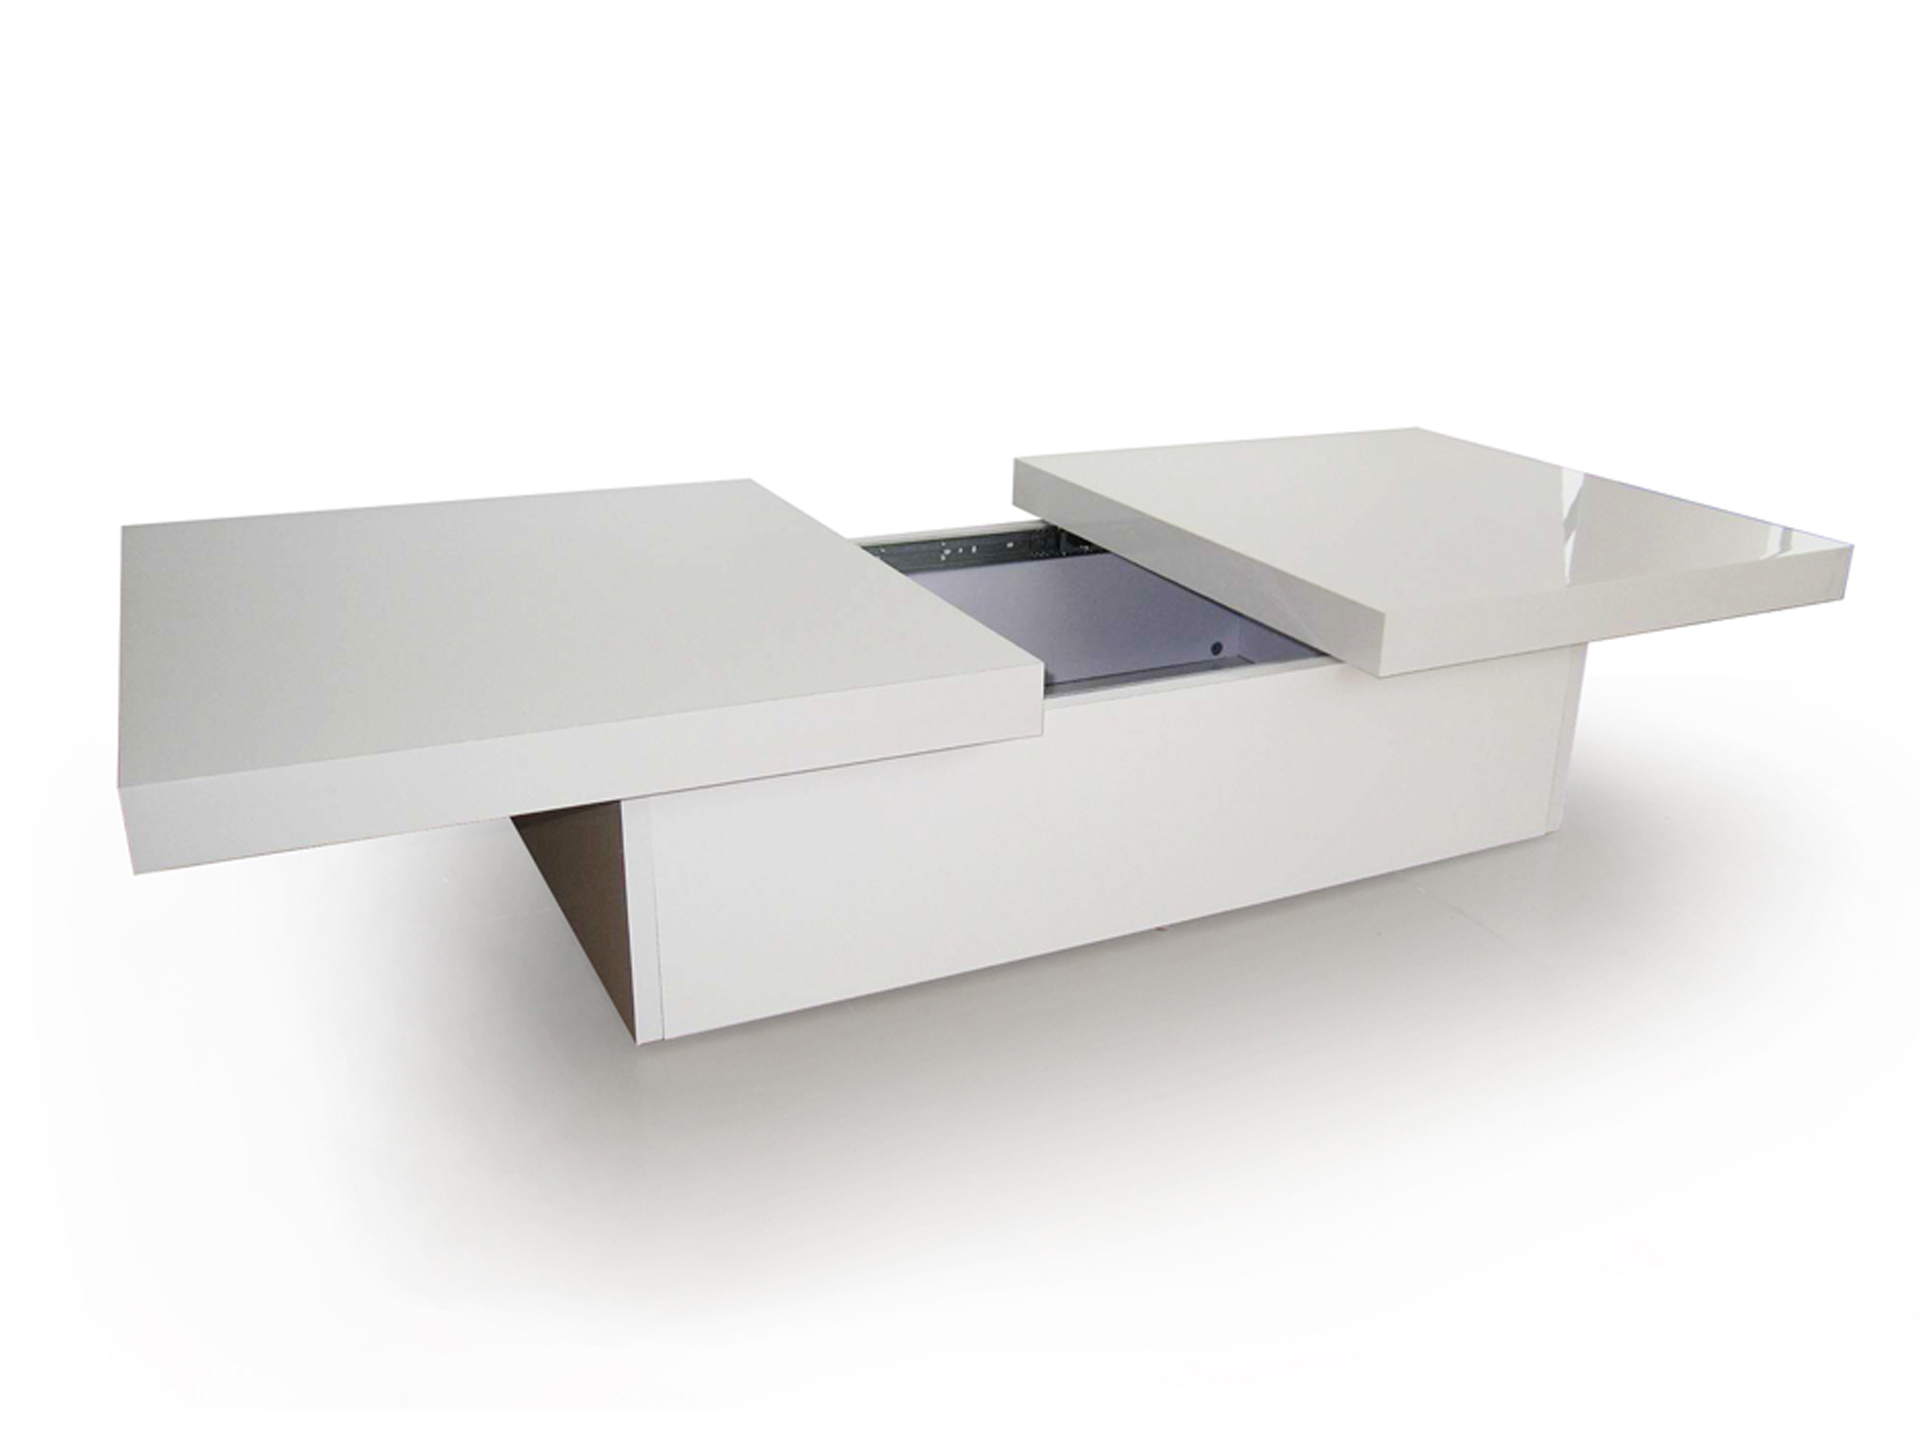 Ligne tango blanche ubaldi table basse Table basse personnalisee photo